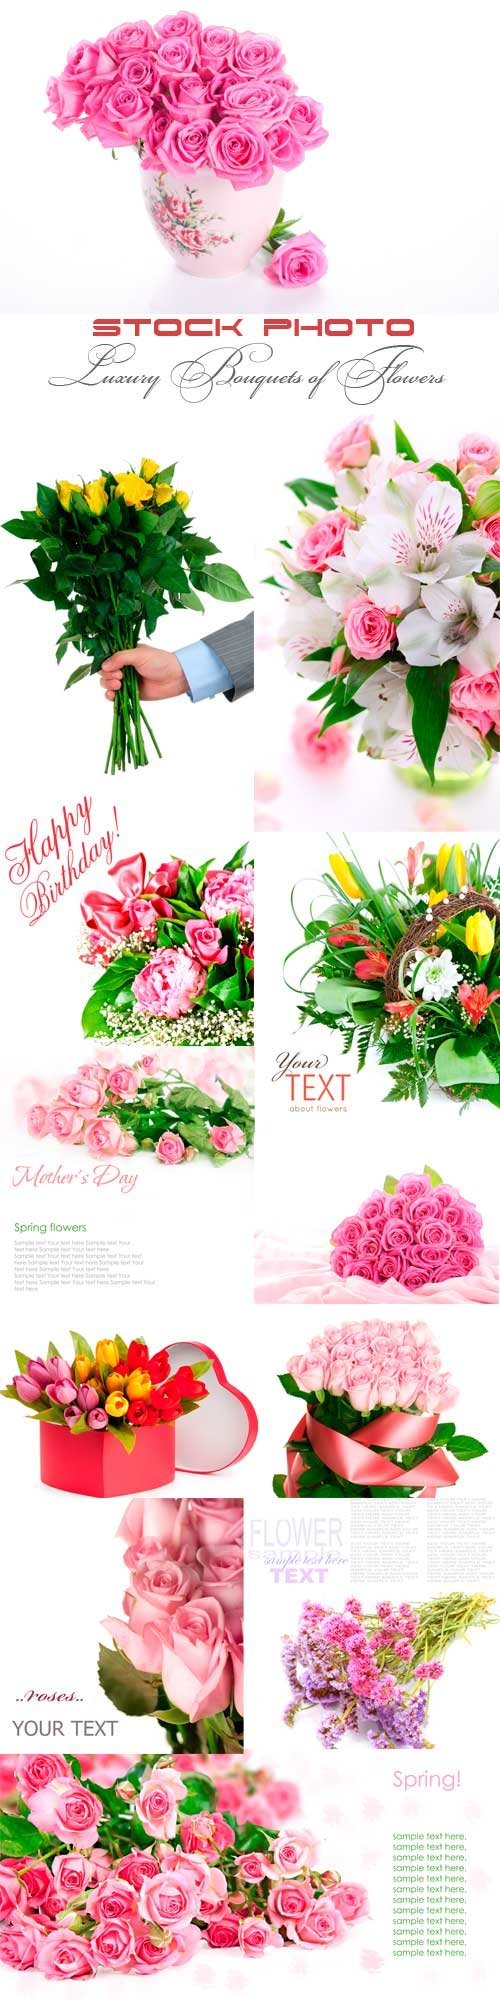 Luxury bouquets of flowers to different holidays